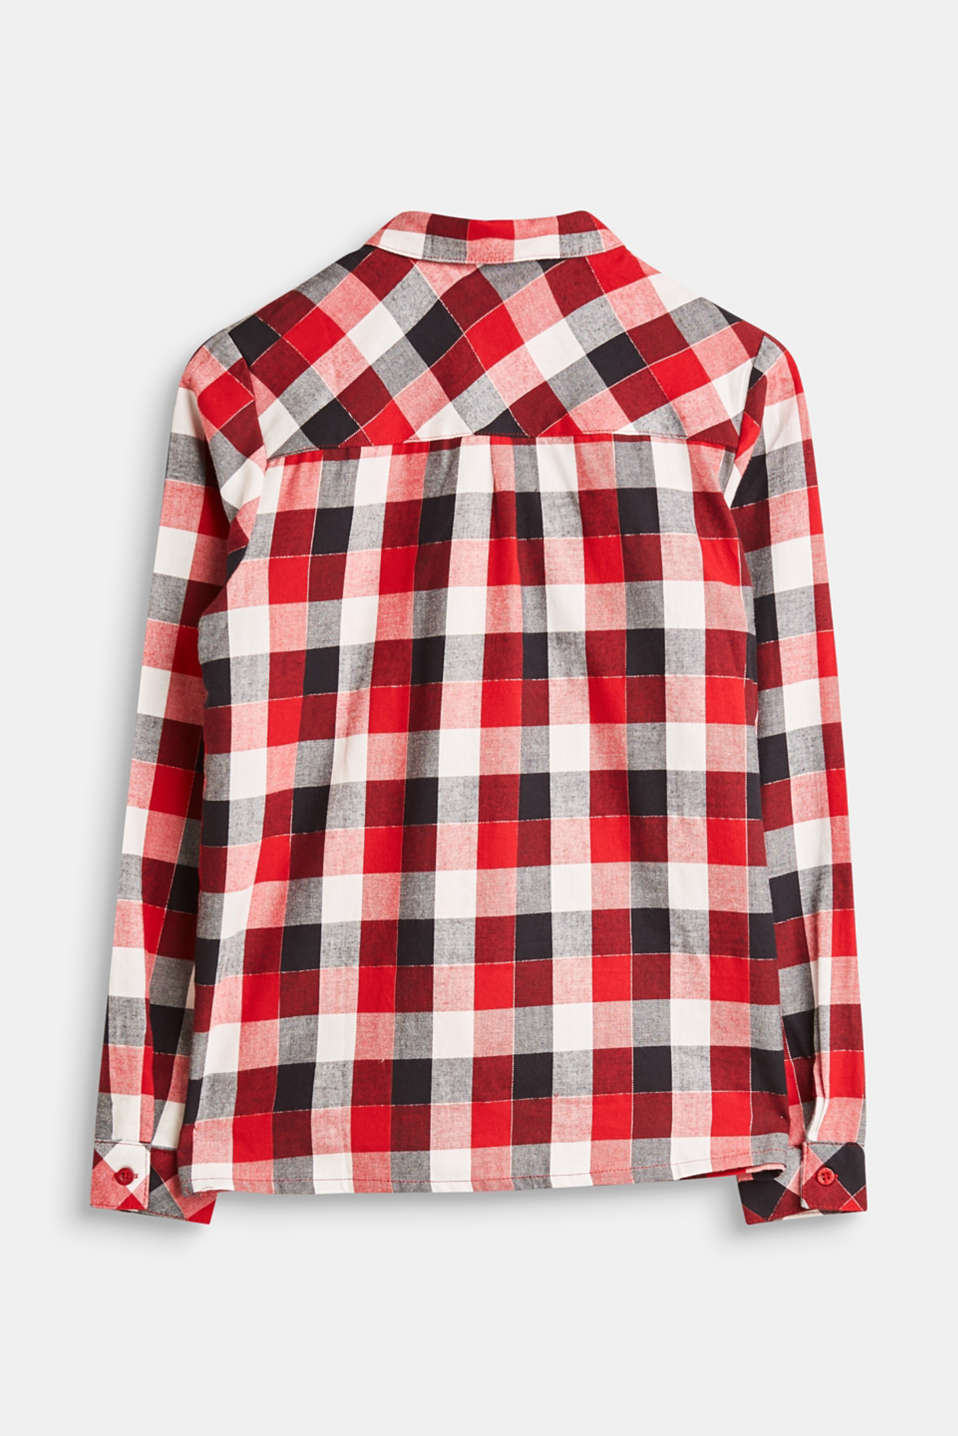 Cotton shirt with a check pattern and glittering fibres